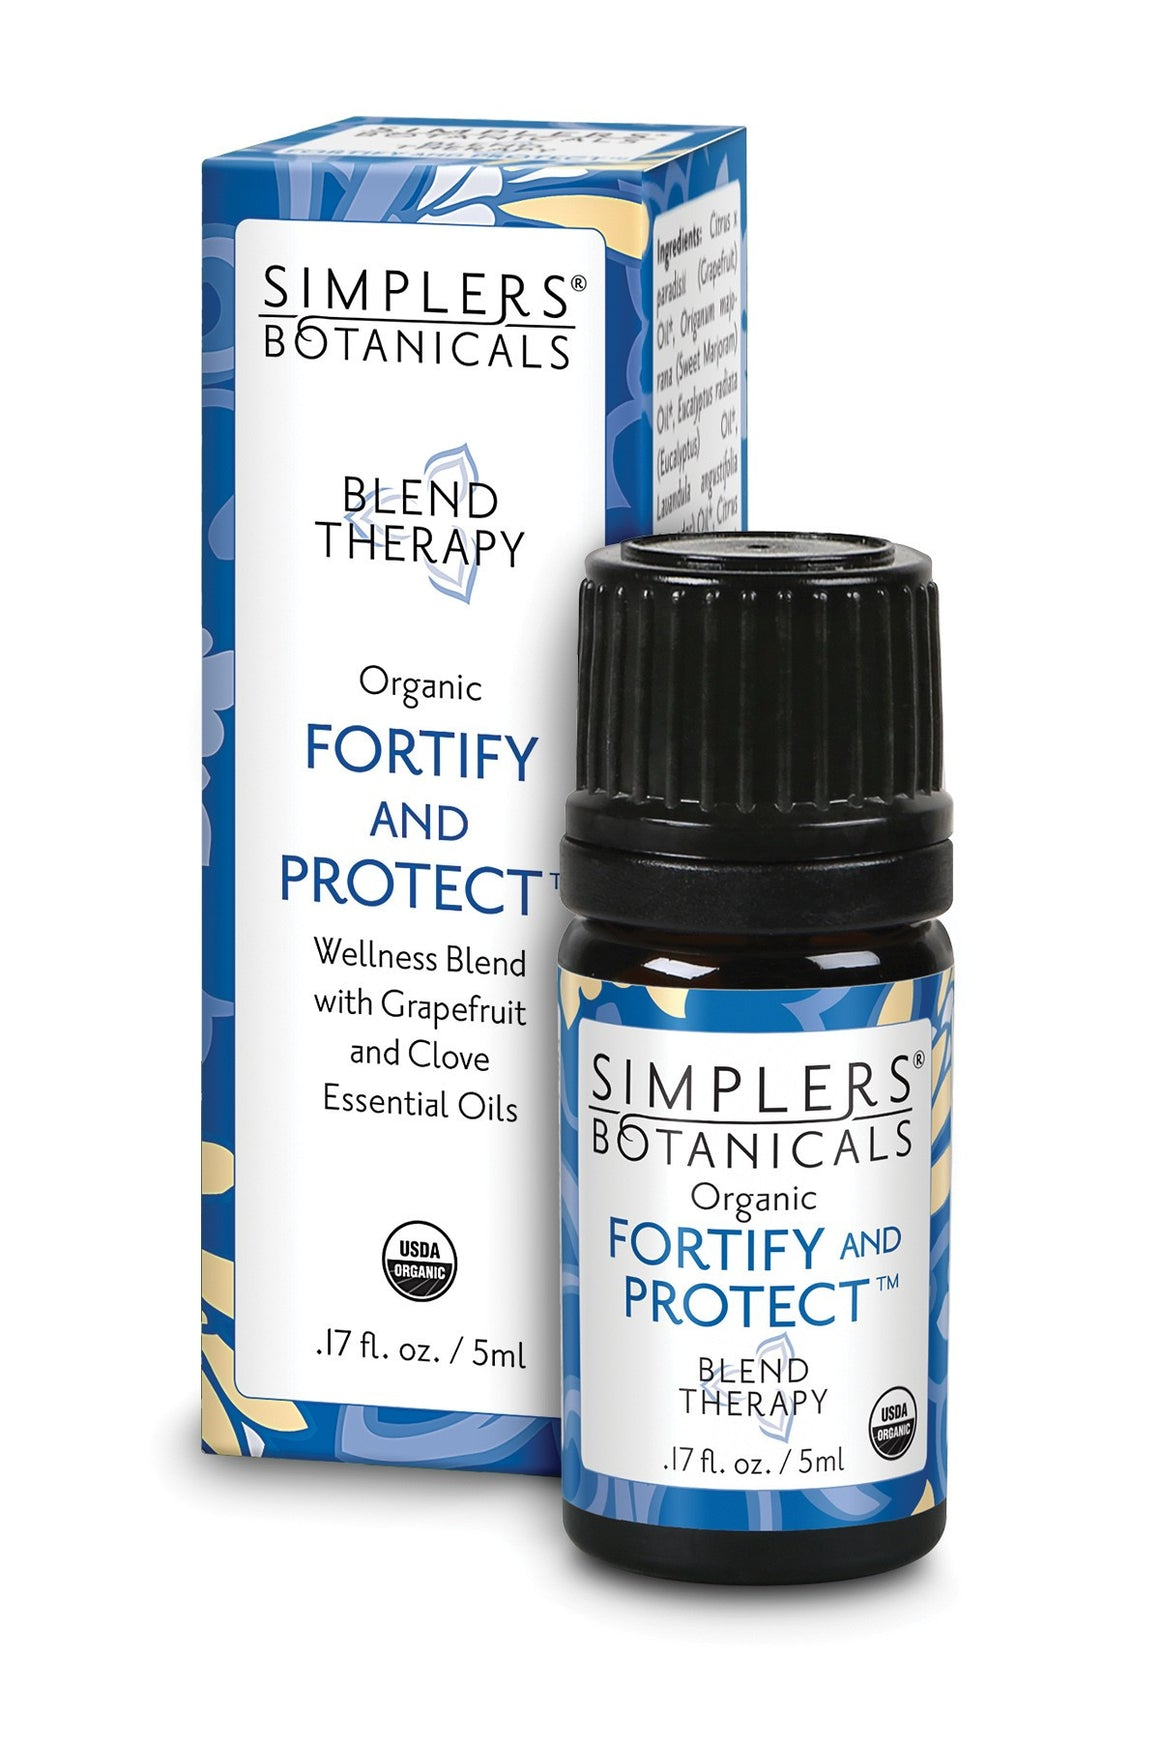 Simpler Botanicals Fortify and Protect